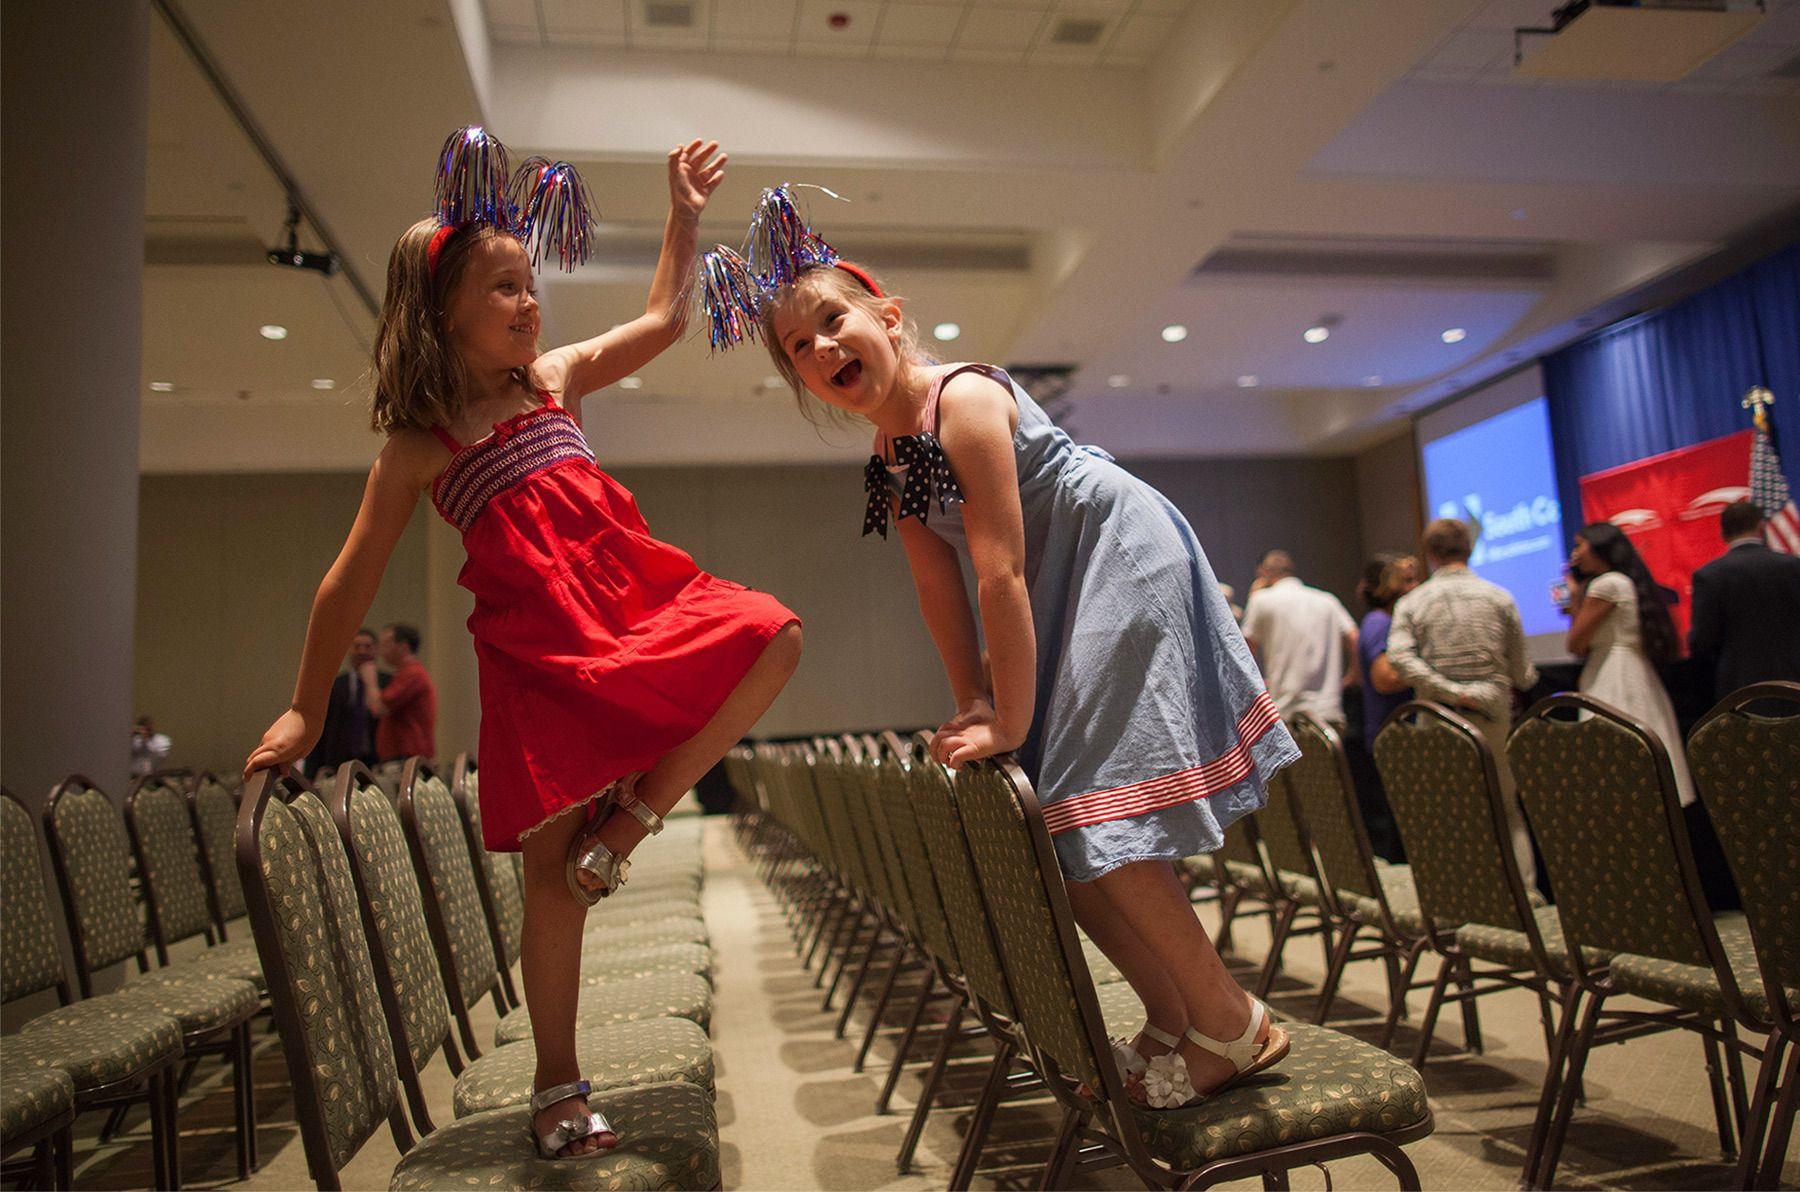 Sisters Sophia (L) and Norah Boice of North Charleston play on the seats after U.S. Democratic presidential candidate and former Secretary of State Hillary Clinton spoke at a rally at Trident Technical College Conference Center in North Charleston, South Carolina June 17, 2015.   REUTERS/Randall Hill